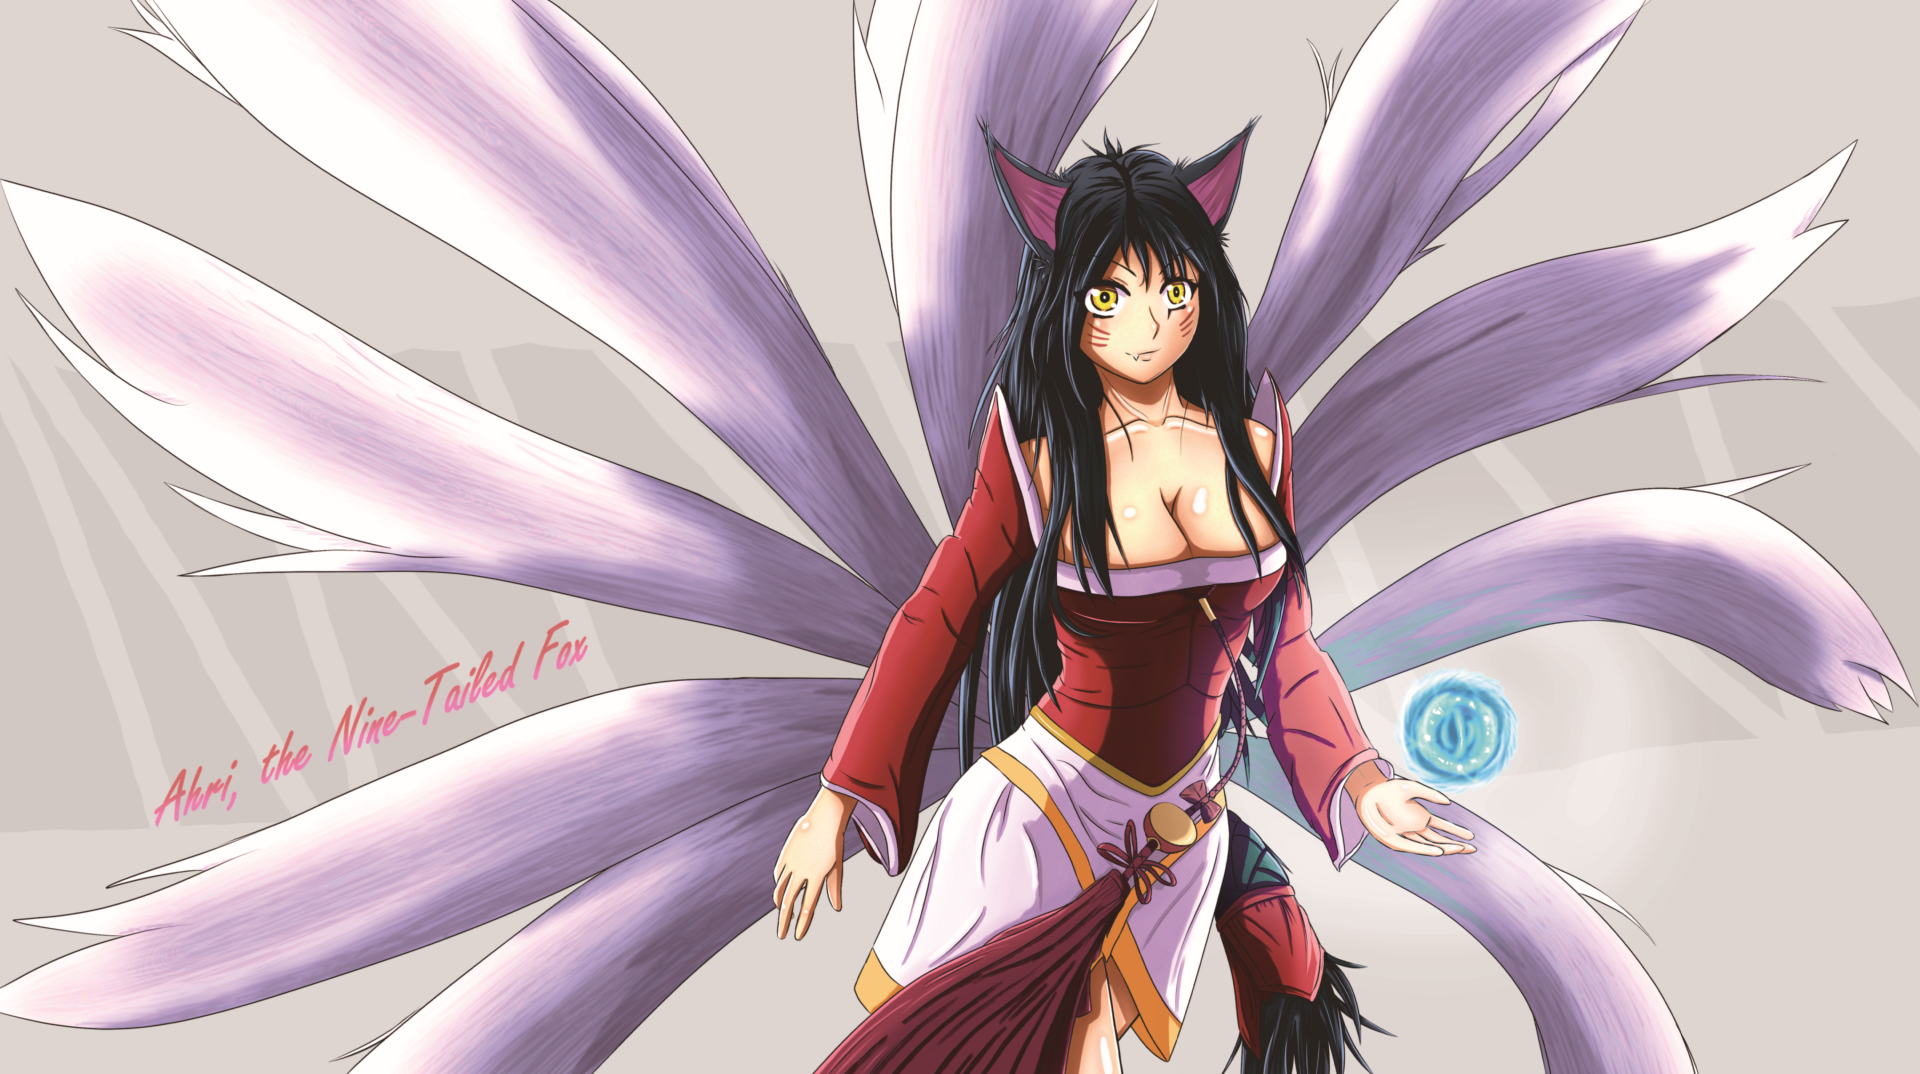 Ahri The Nine Tailed Fox Wallpaper By Lostgryphon On Deviantart